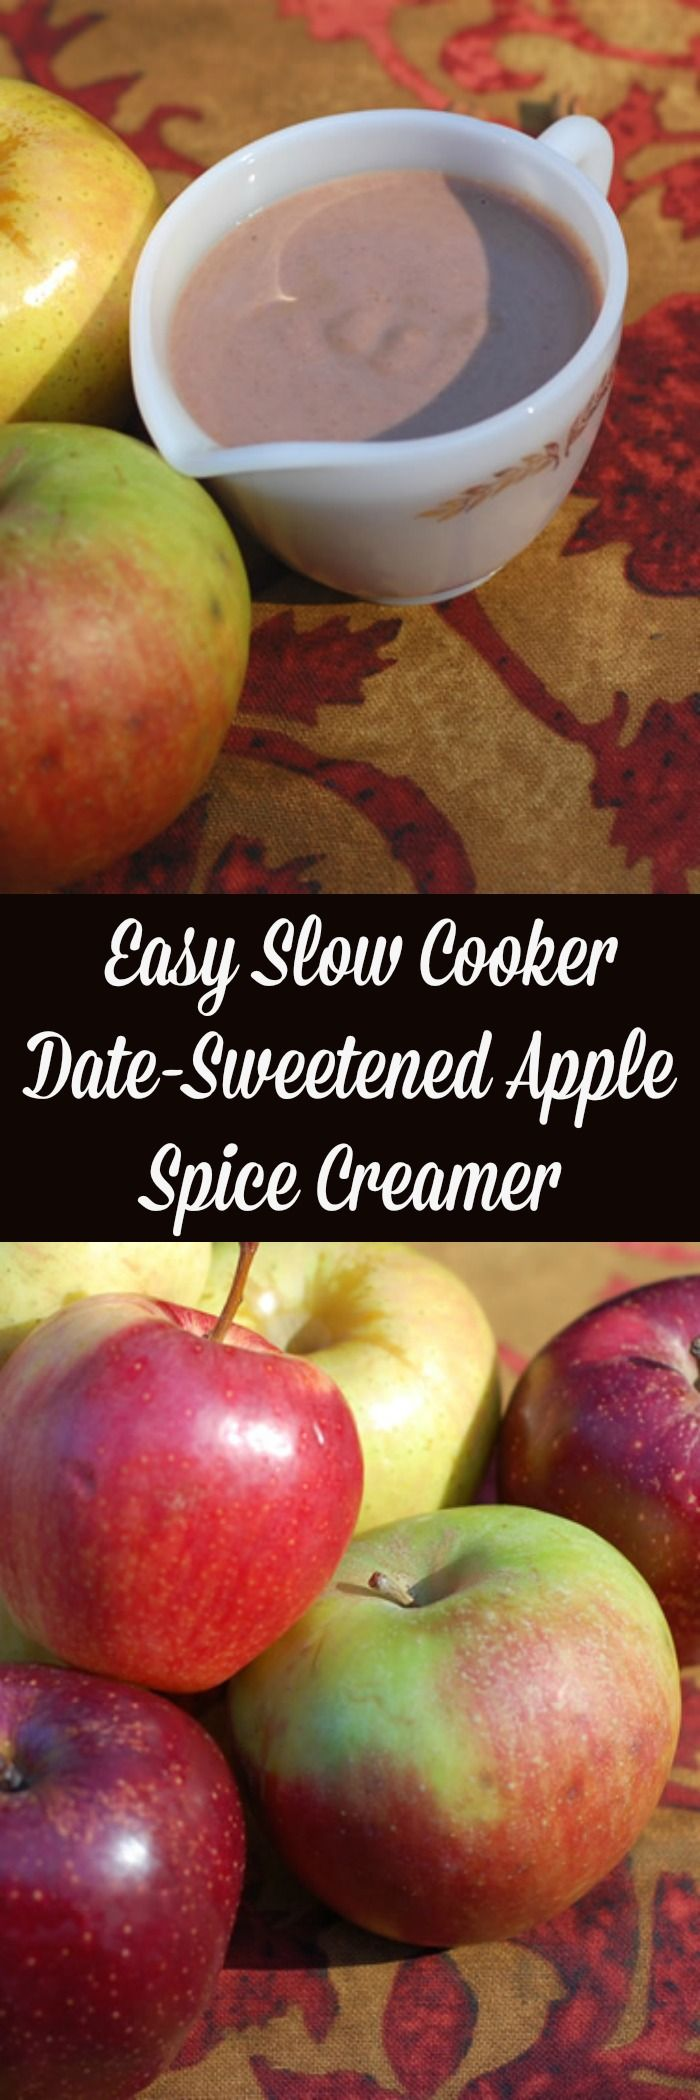 Easy Slow Cooker Date-Sweetened Apple Spice Creamer is just amazing and full of cinnamon and apples, all wrapped up in creamy coconut milk.